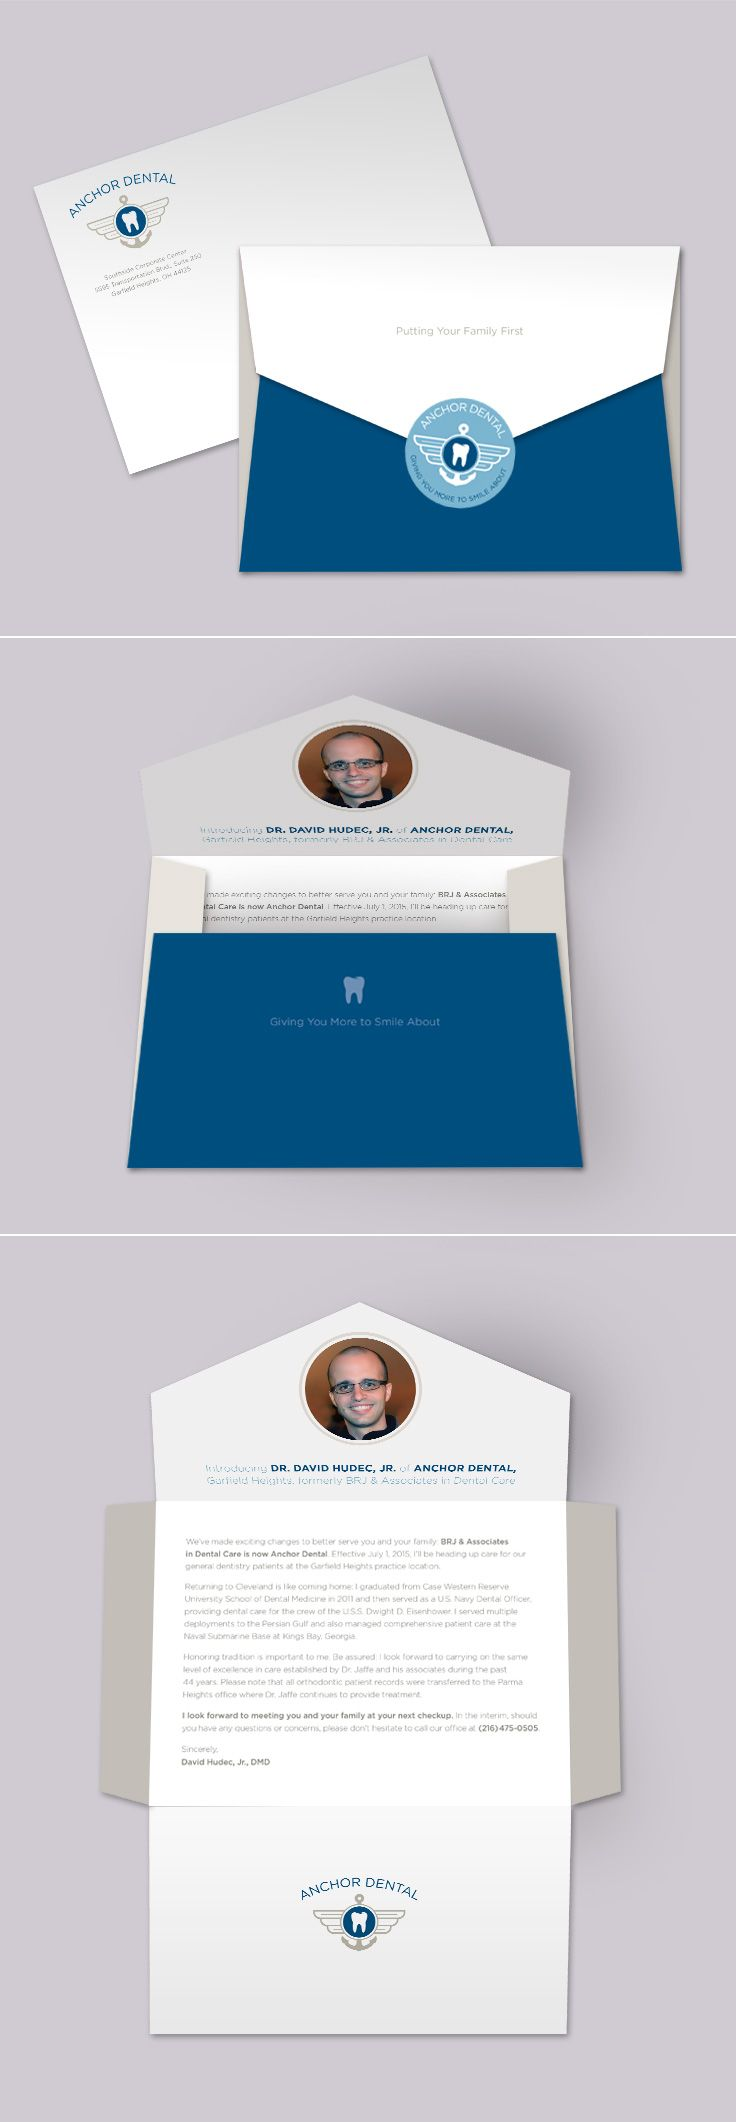 anchor dental direct mail letter design